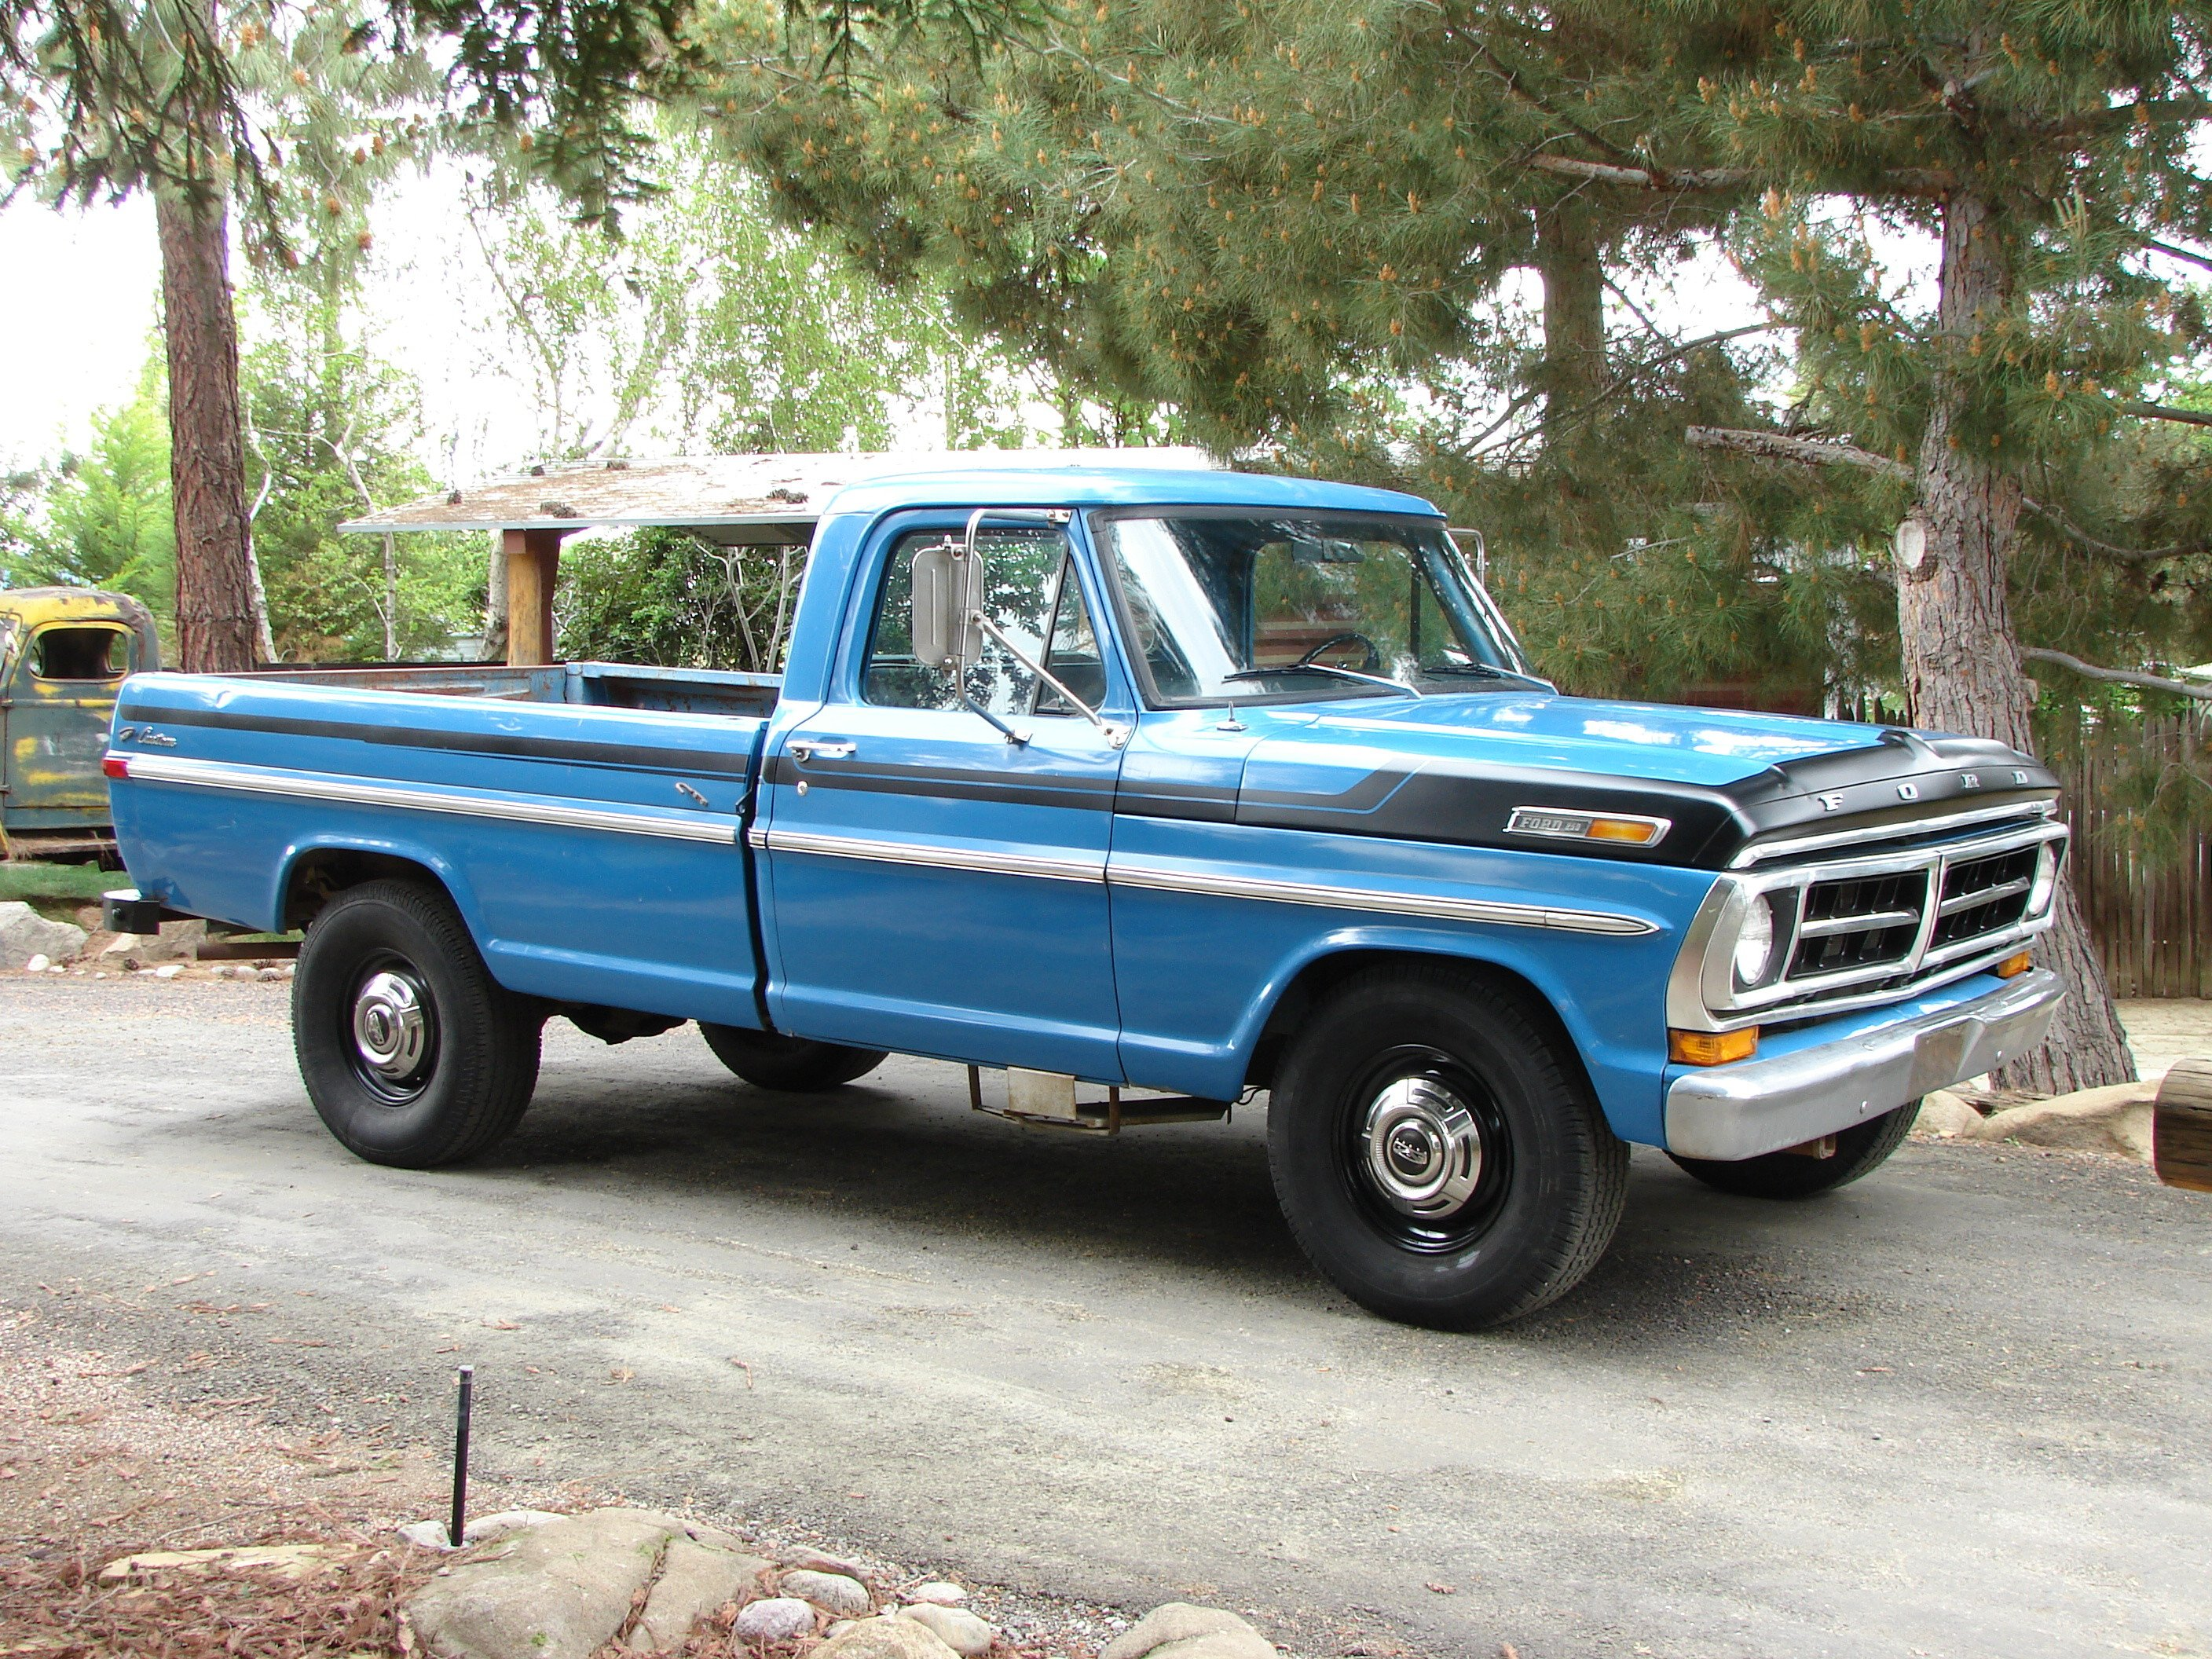 1971 Ford F250 classic trucks Car 100858481 92c479b6472f5dba32f68c7b4cbf3e2d?w=350&h=218&r=thumbnail ford f250 classics for sale classics on autotrader 1972 ford f250 wiring harness replacement at bayanpartner.co